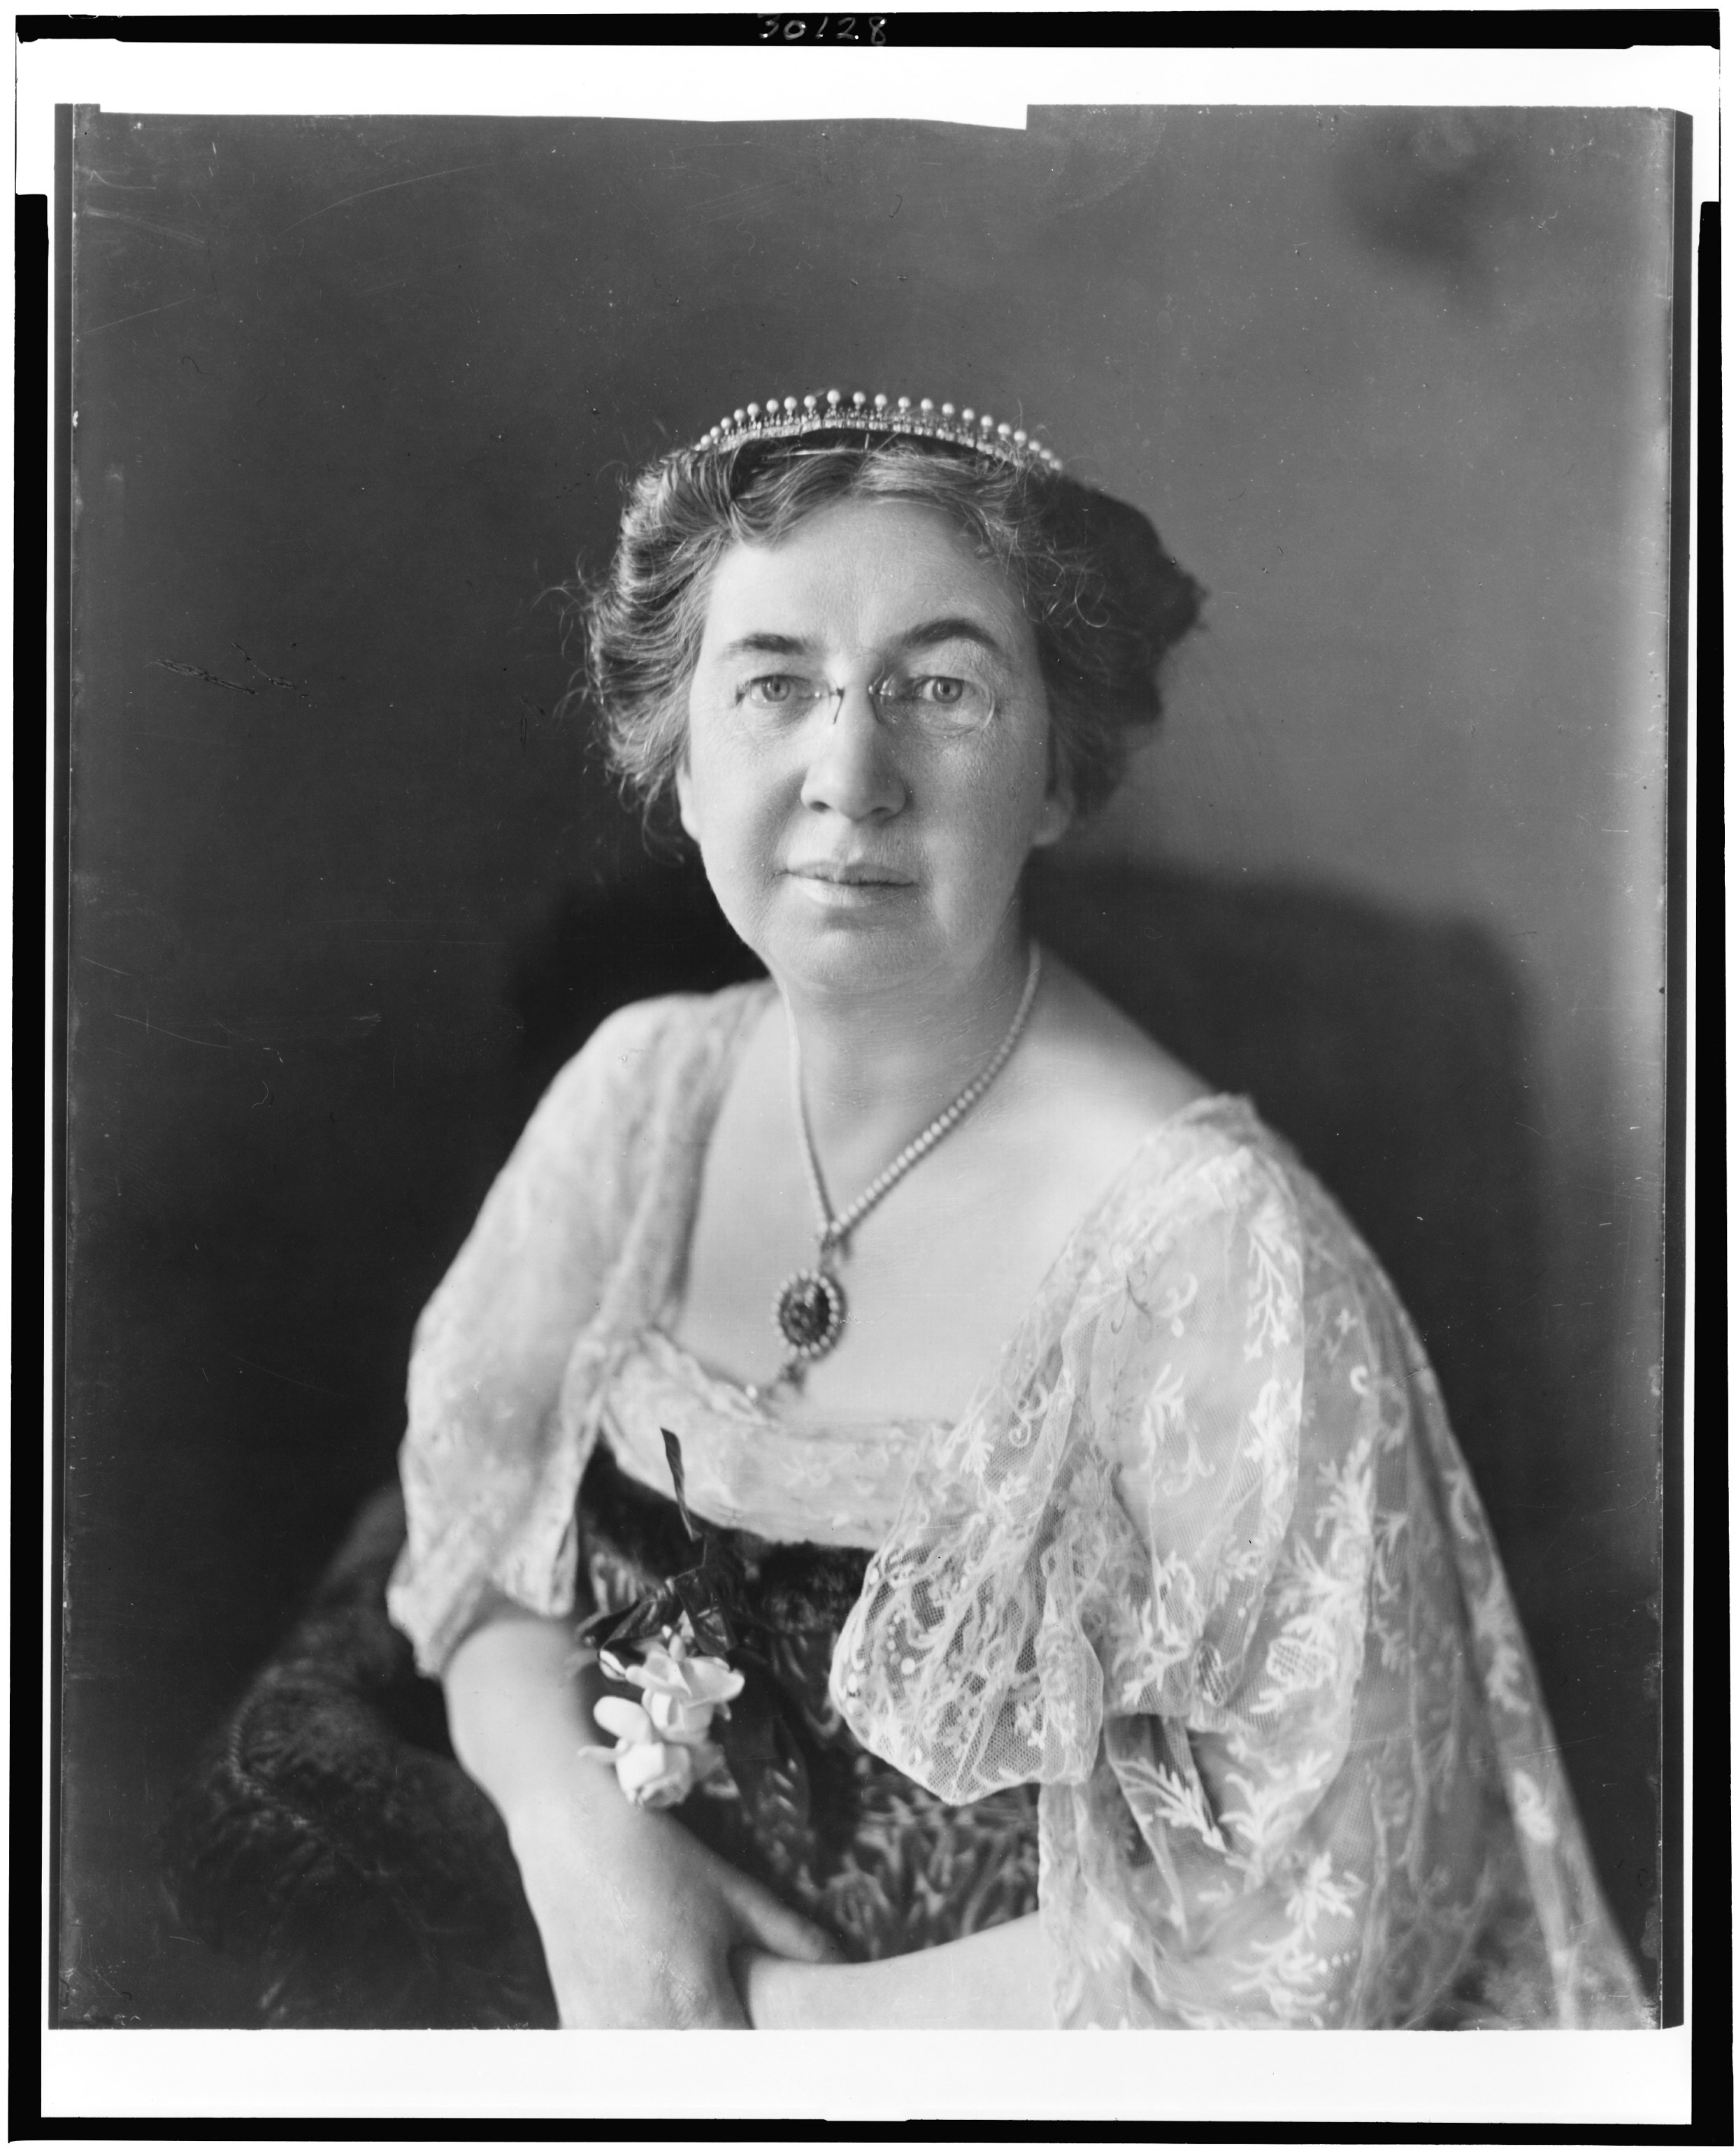 Mabel Hubbard Bell